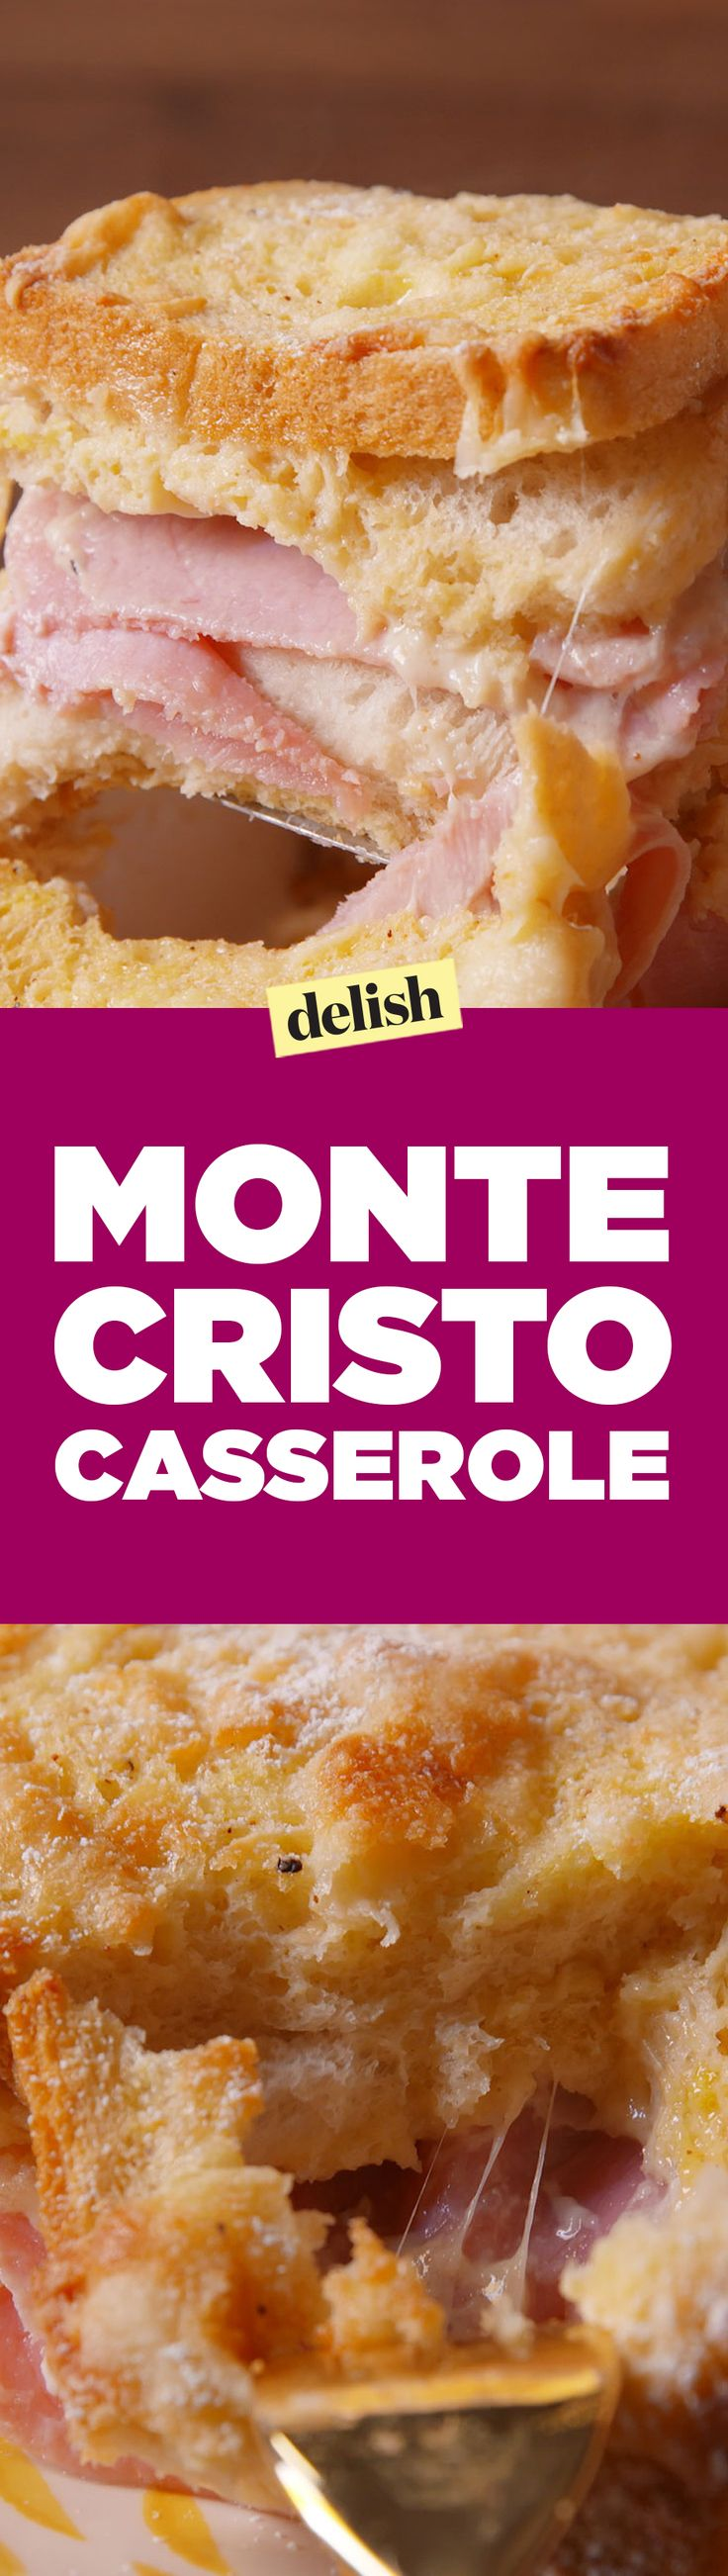 You've never seen a Monte Cristo like this before. Get the recipe on Delish.com.